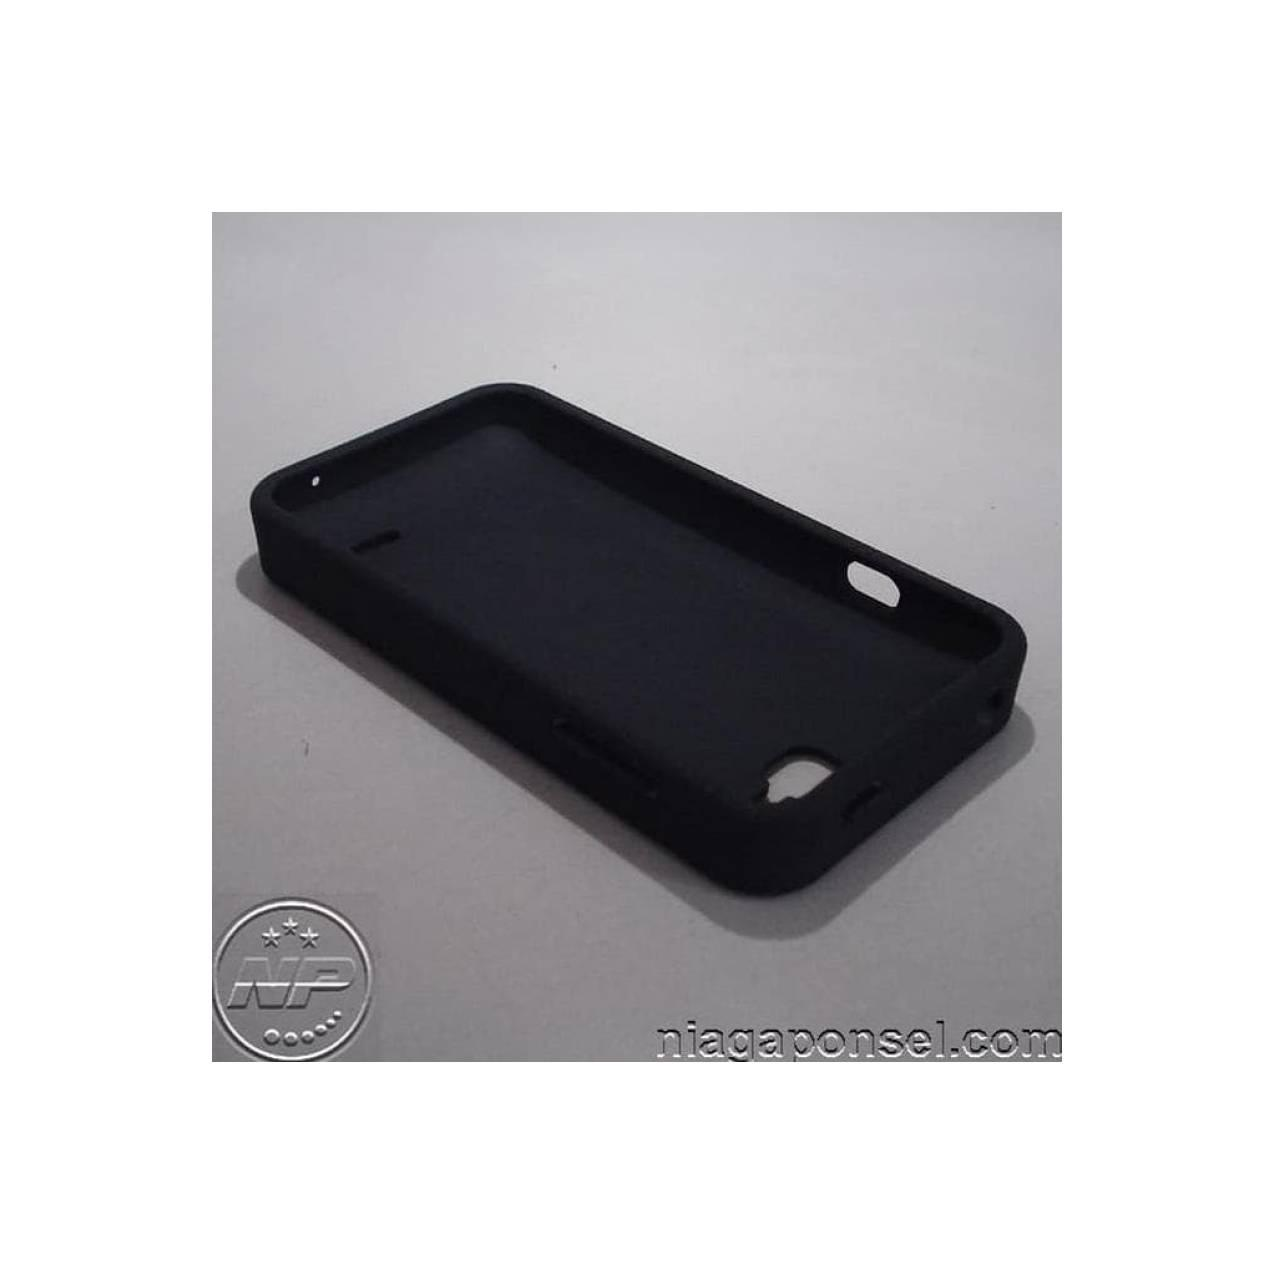 Jual Cyrus Original Softcase Cover Esia Maxfun 4.0 Limited